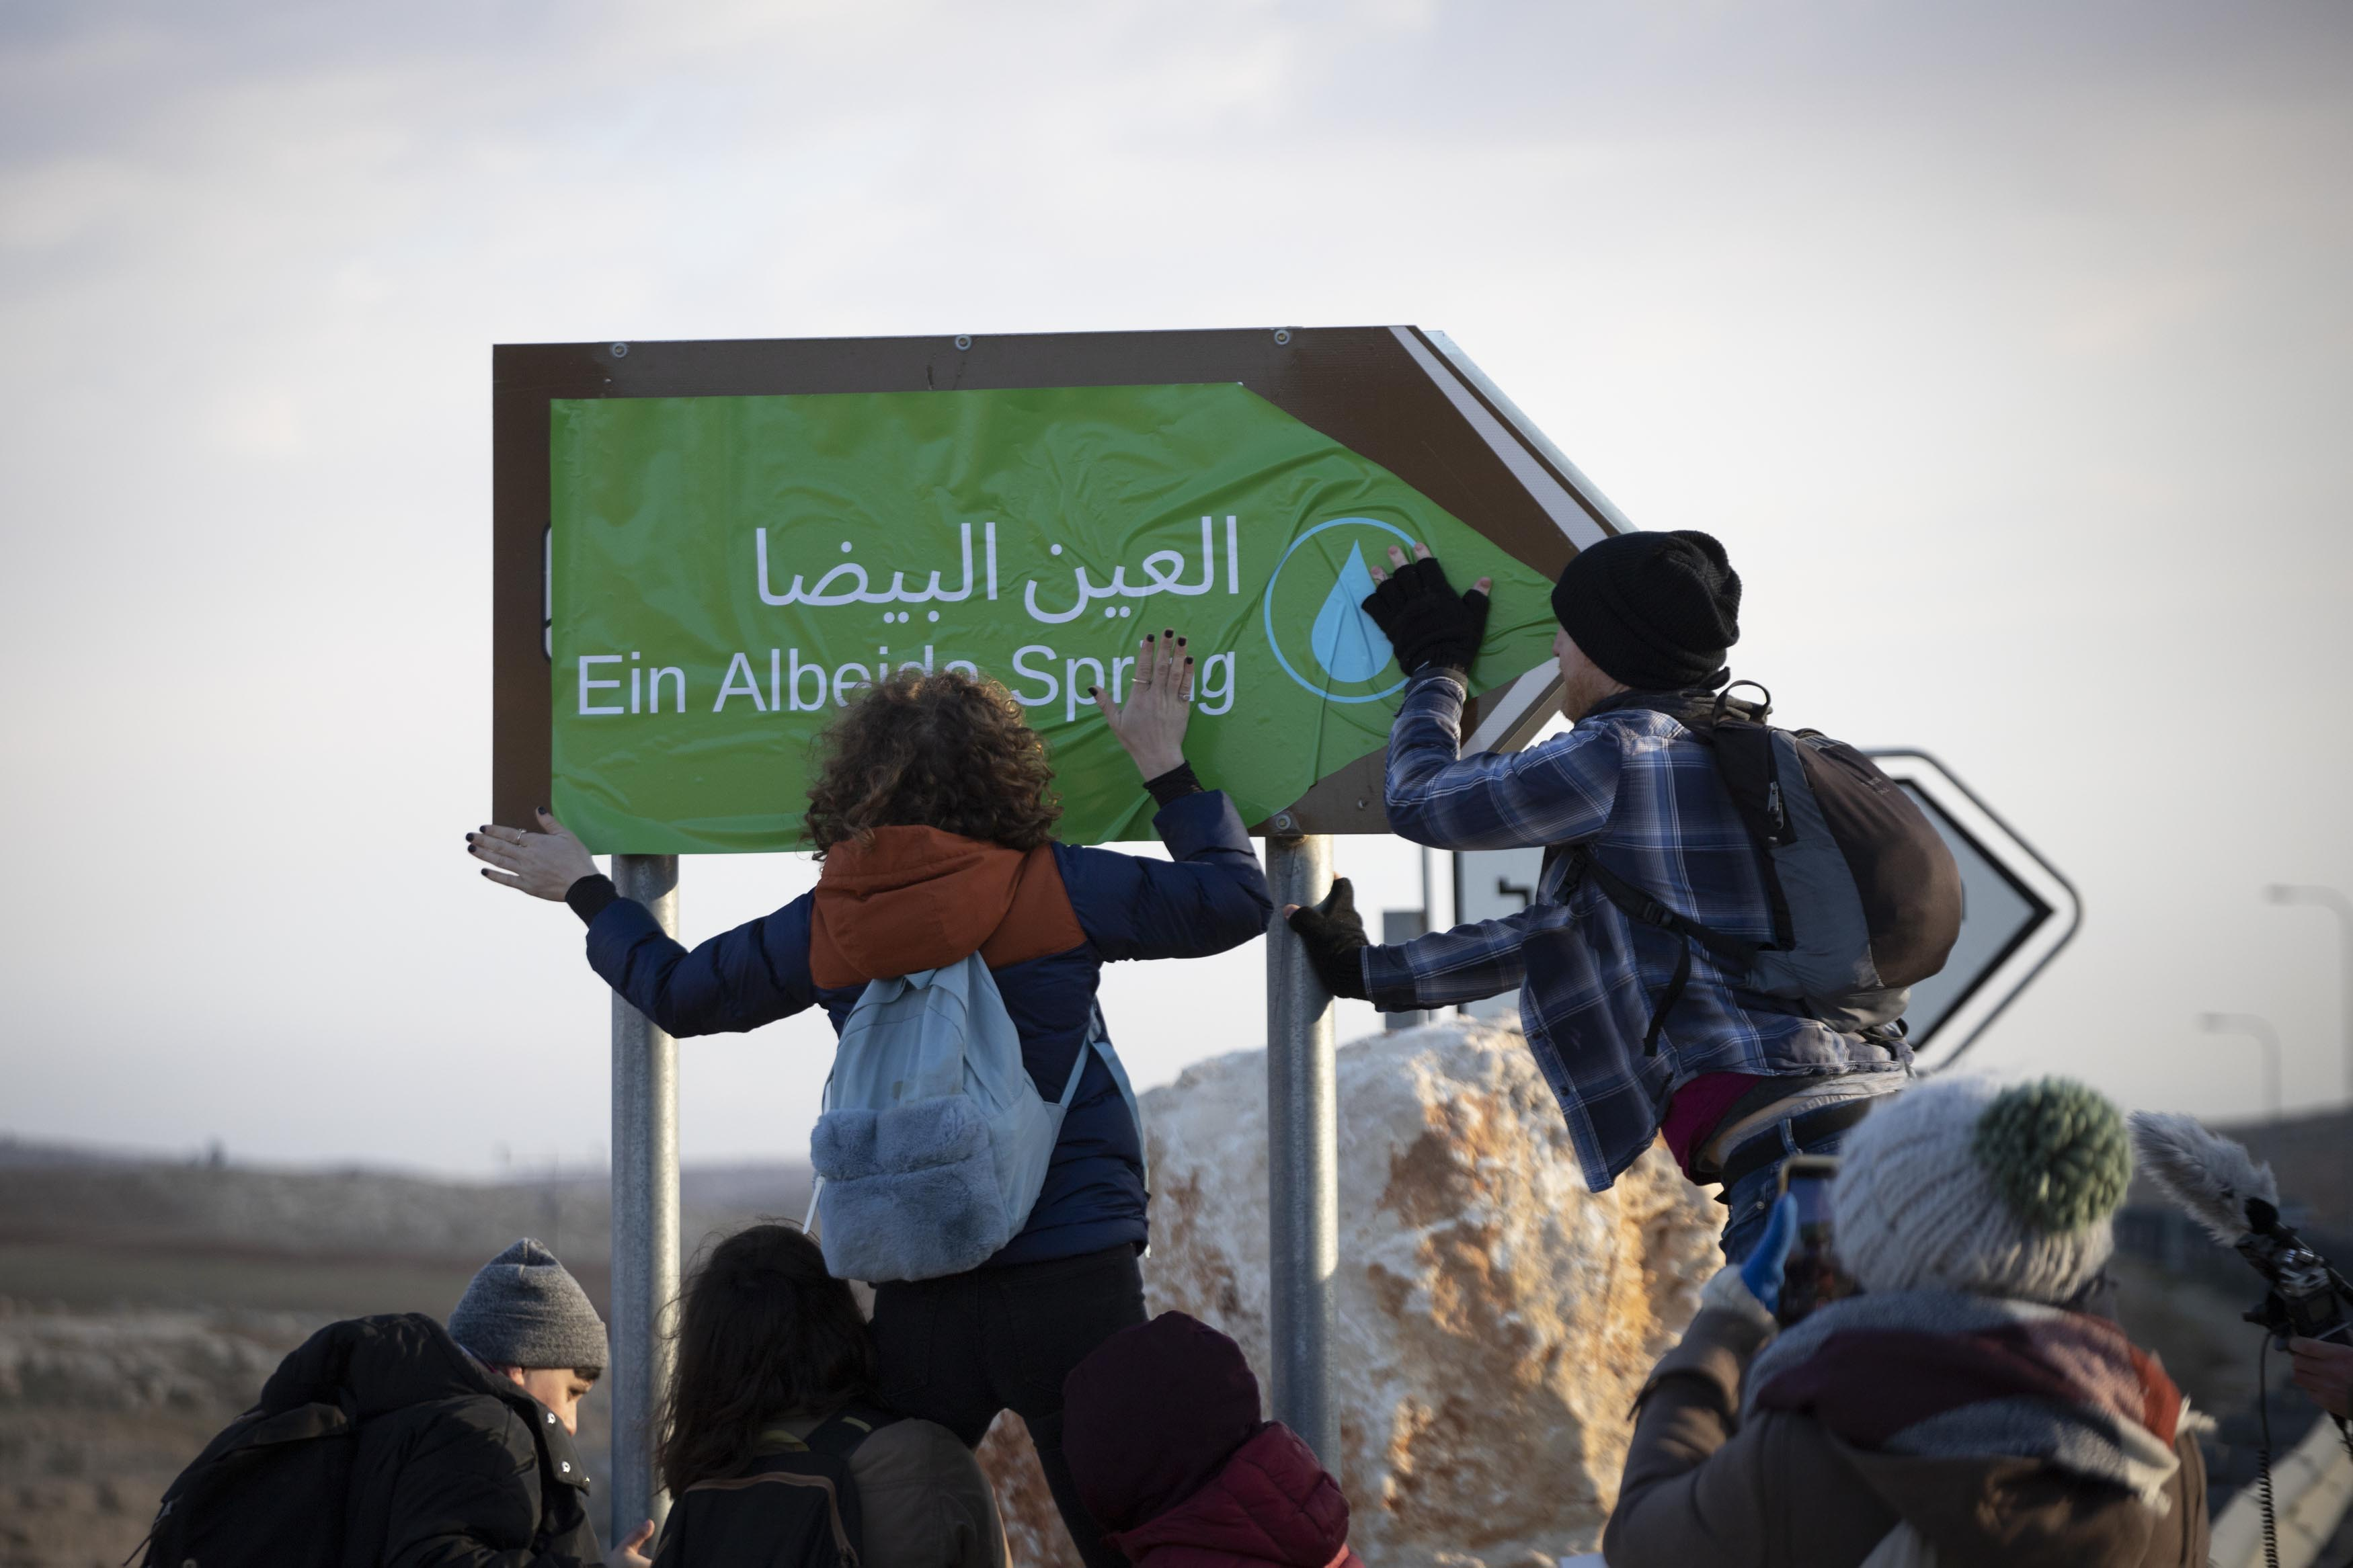 Activists affix a new sign pointing to Ein Albeida spring along Route 60, South Hebron Hills, January 3, 2020. (Oren Ziv/Activestills.org)